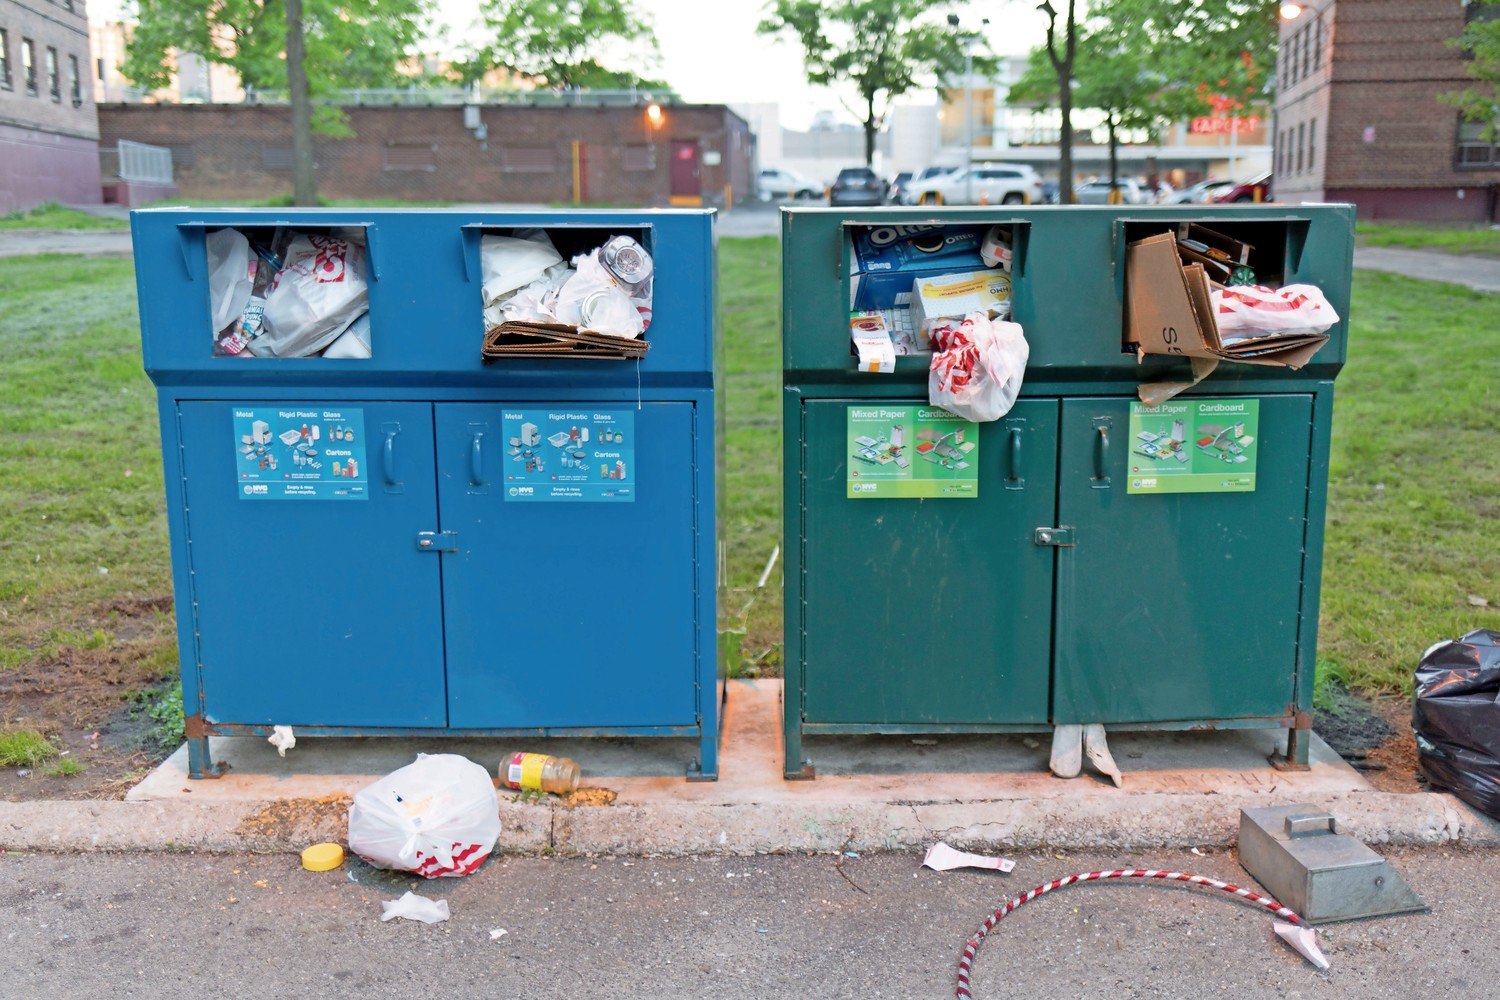 Garbage overflows from designated bins at Marble Hill Houses. The complex only has a handful of garbage bins, which is not enough for the number of buildings and tenants, according to Tony Edwards, the president of the Marble Hill tenants association.